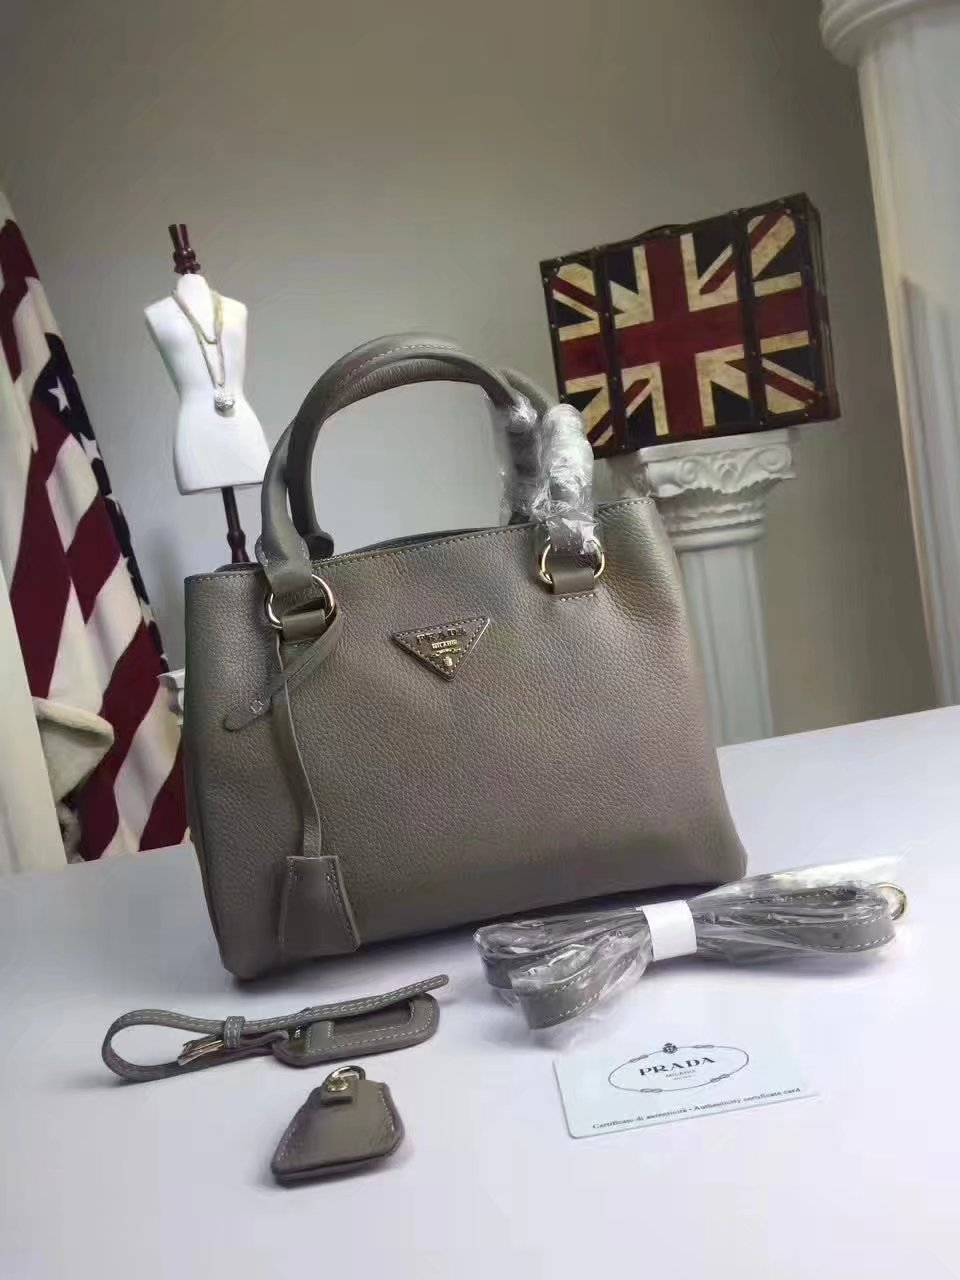 Prada Calf Leather Tote Double Leather Top Handle Bag Grey